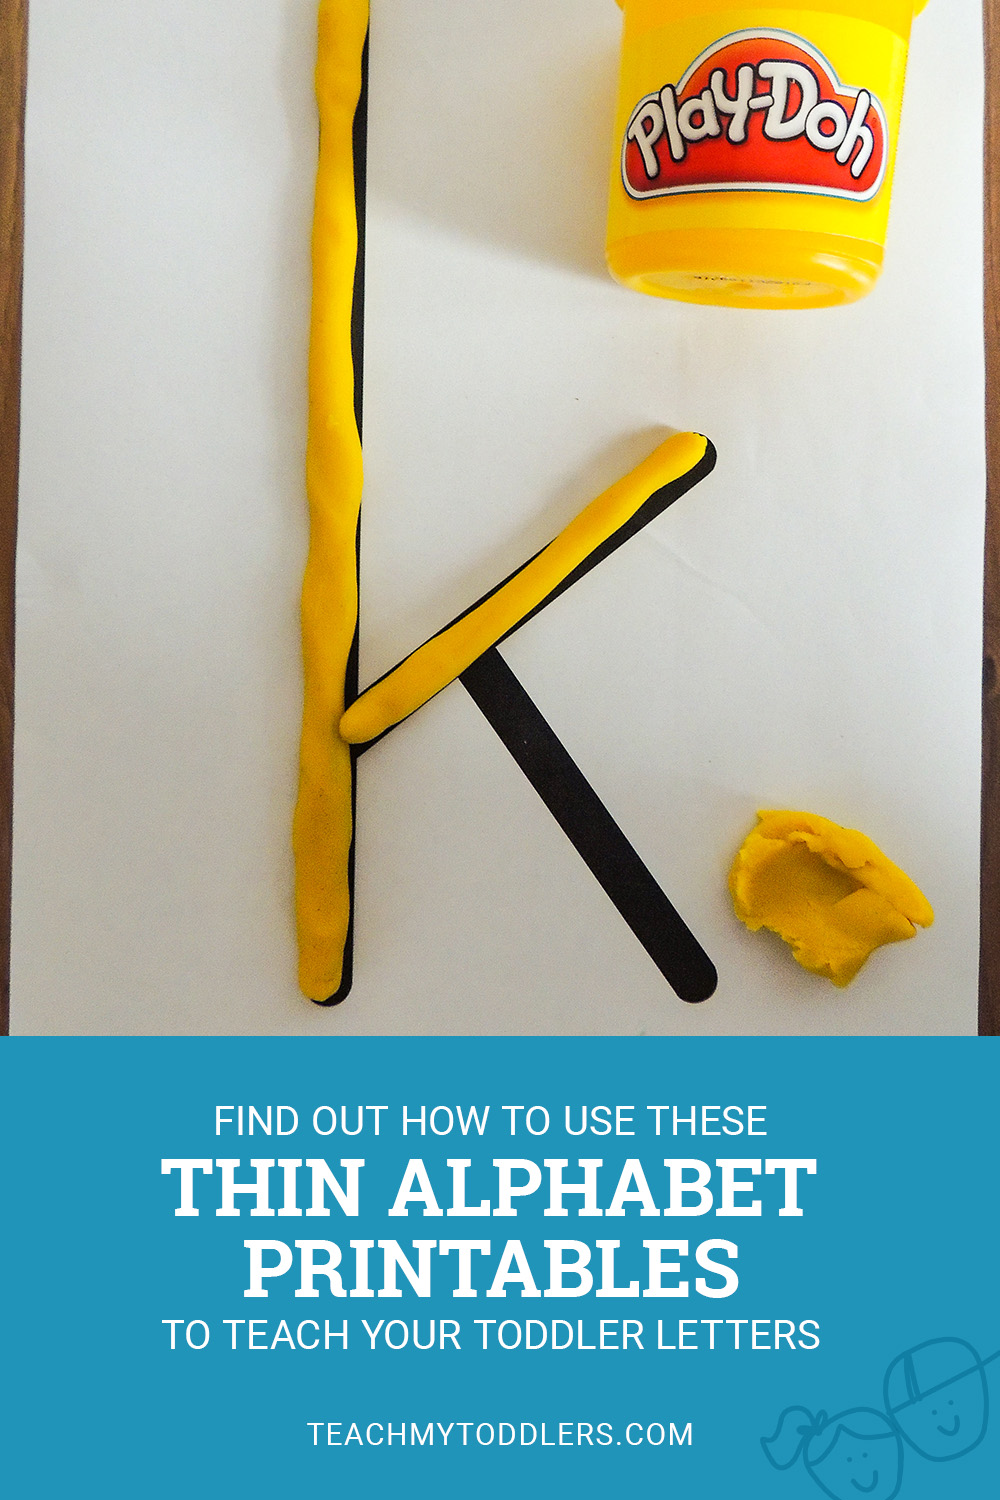 Find out how to use these thin alphabet printables to teach toddlers letters